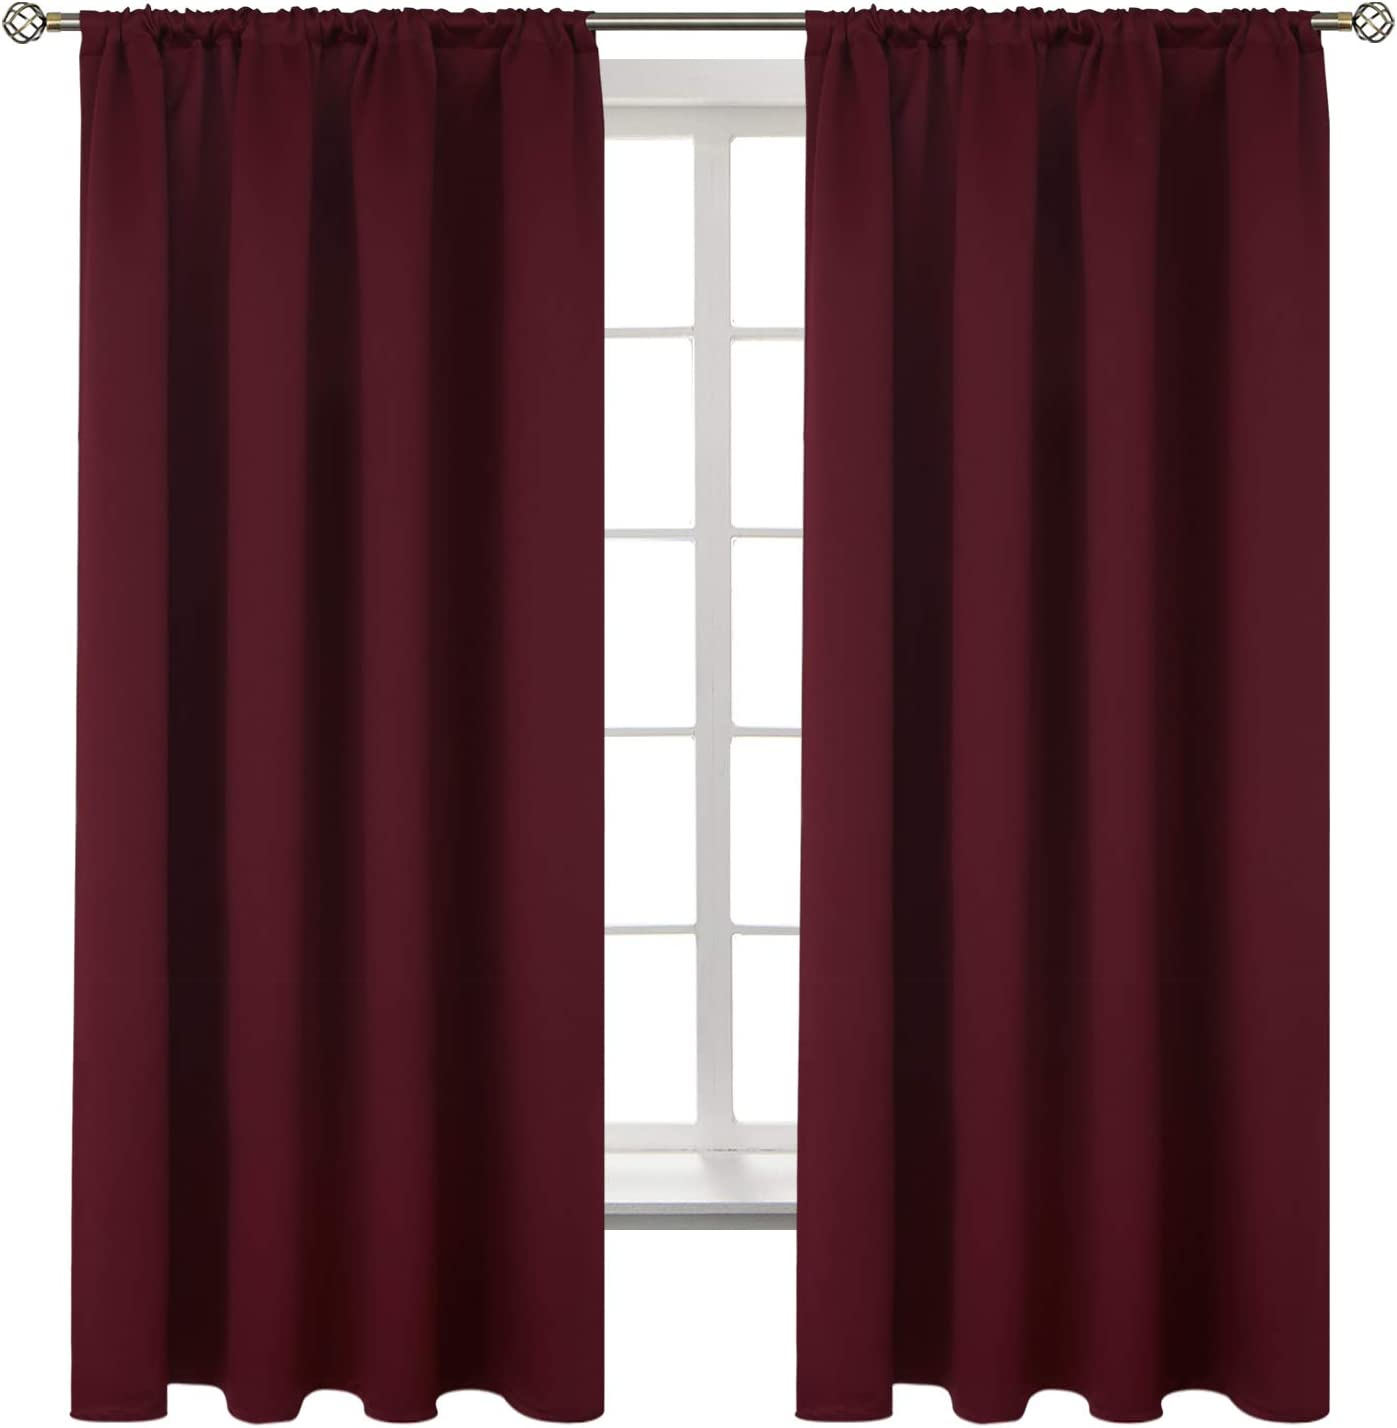 BGment Rod Pocket Blackout Curtains for Bedroom - Thermal Insulated Room Darkening Curtain for Living Room , 52 x 63 Inch, 2 Panels, Burgundy